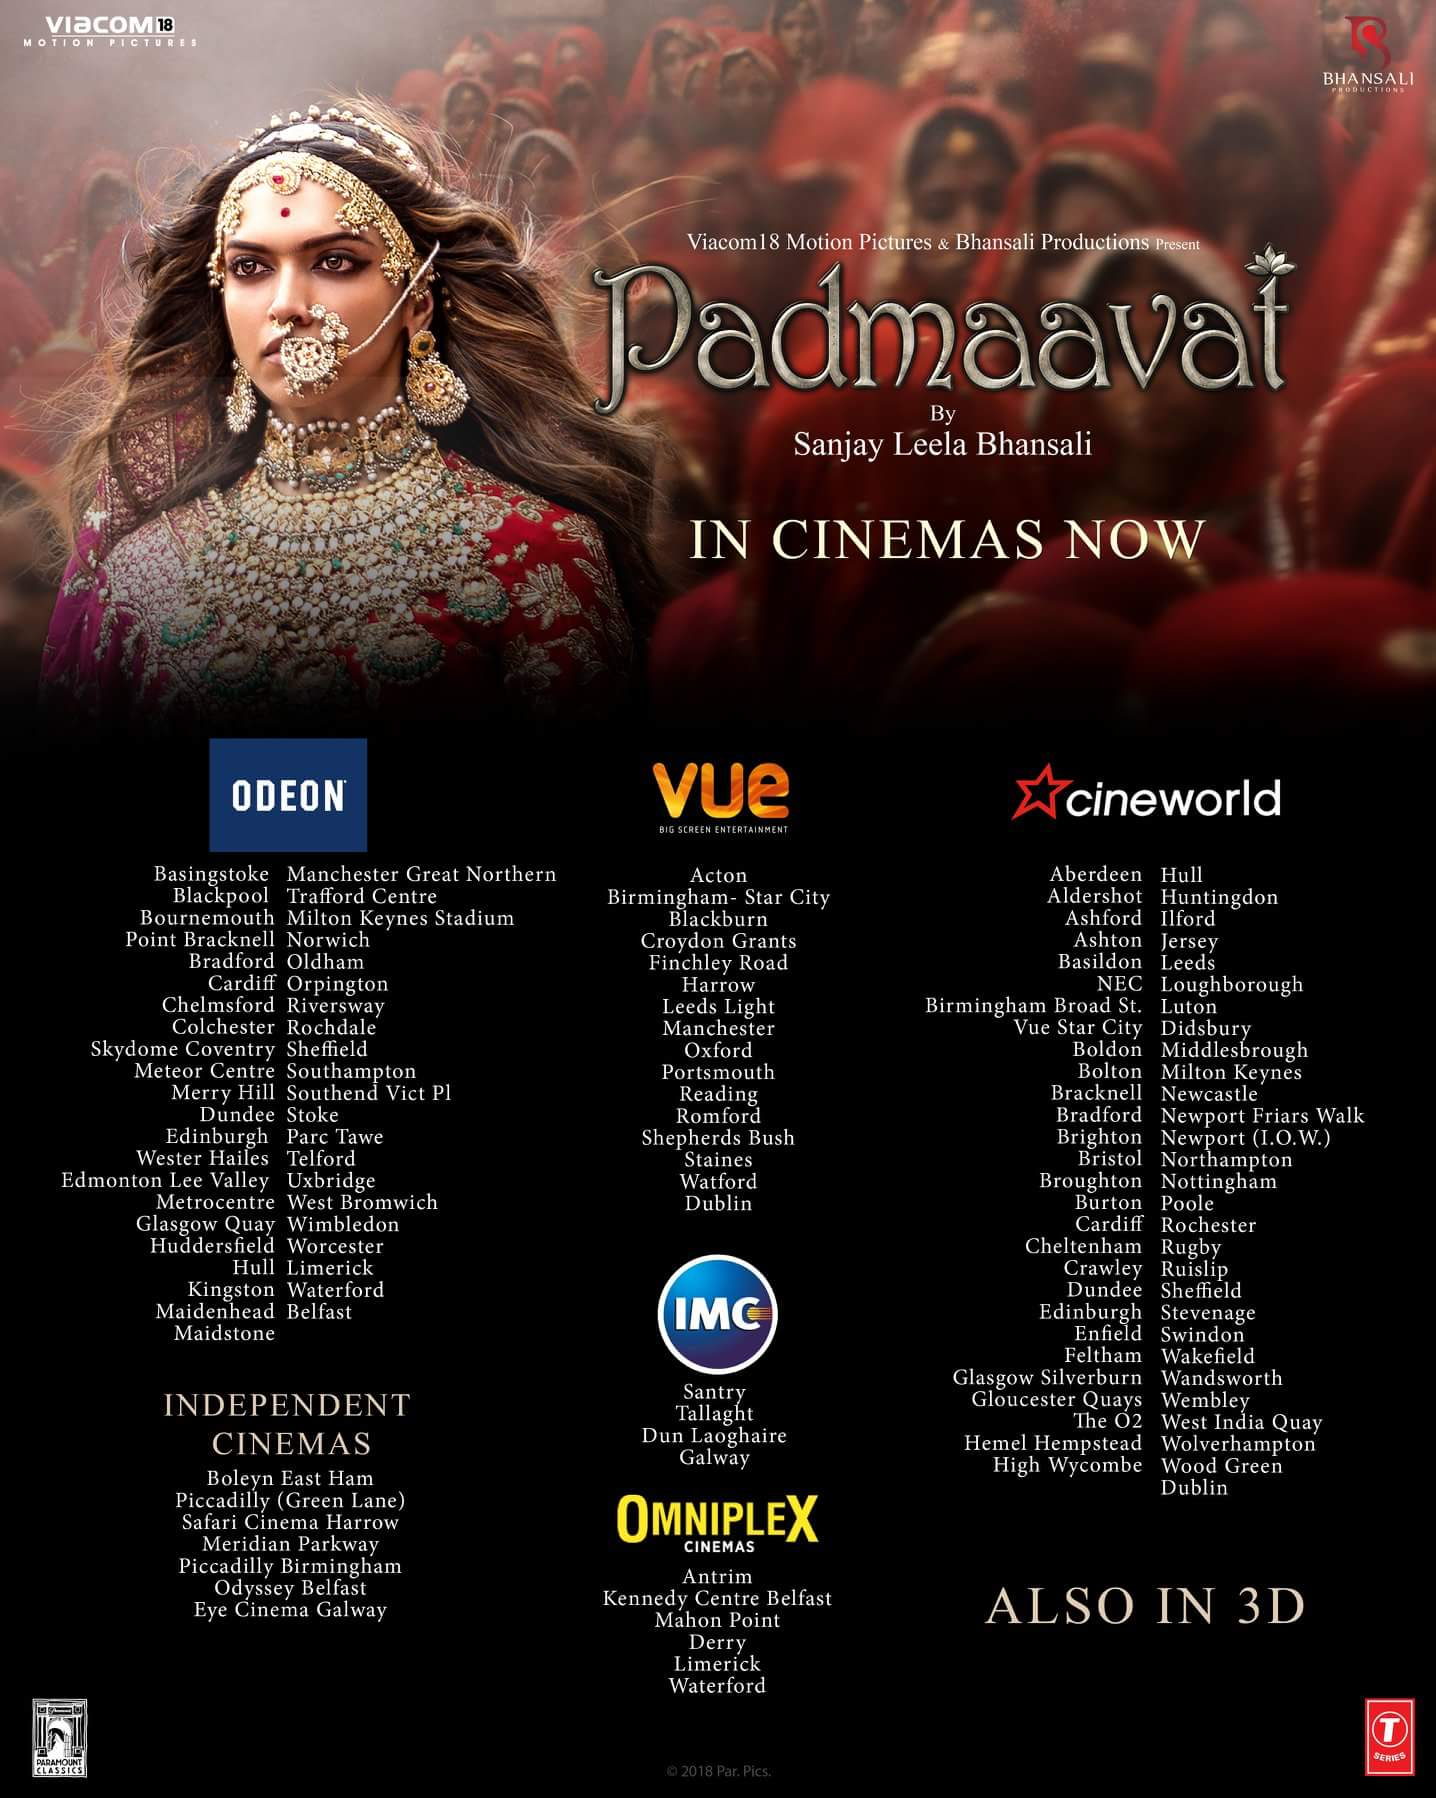 Padmaavat UK Cinema Listings